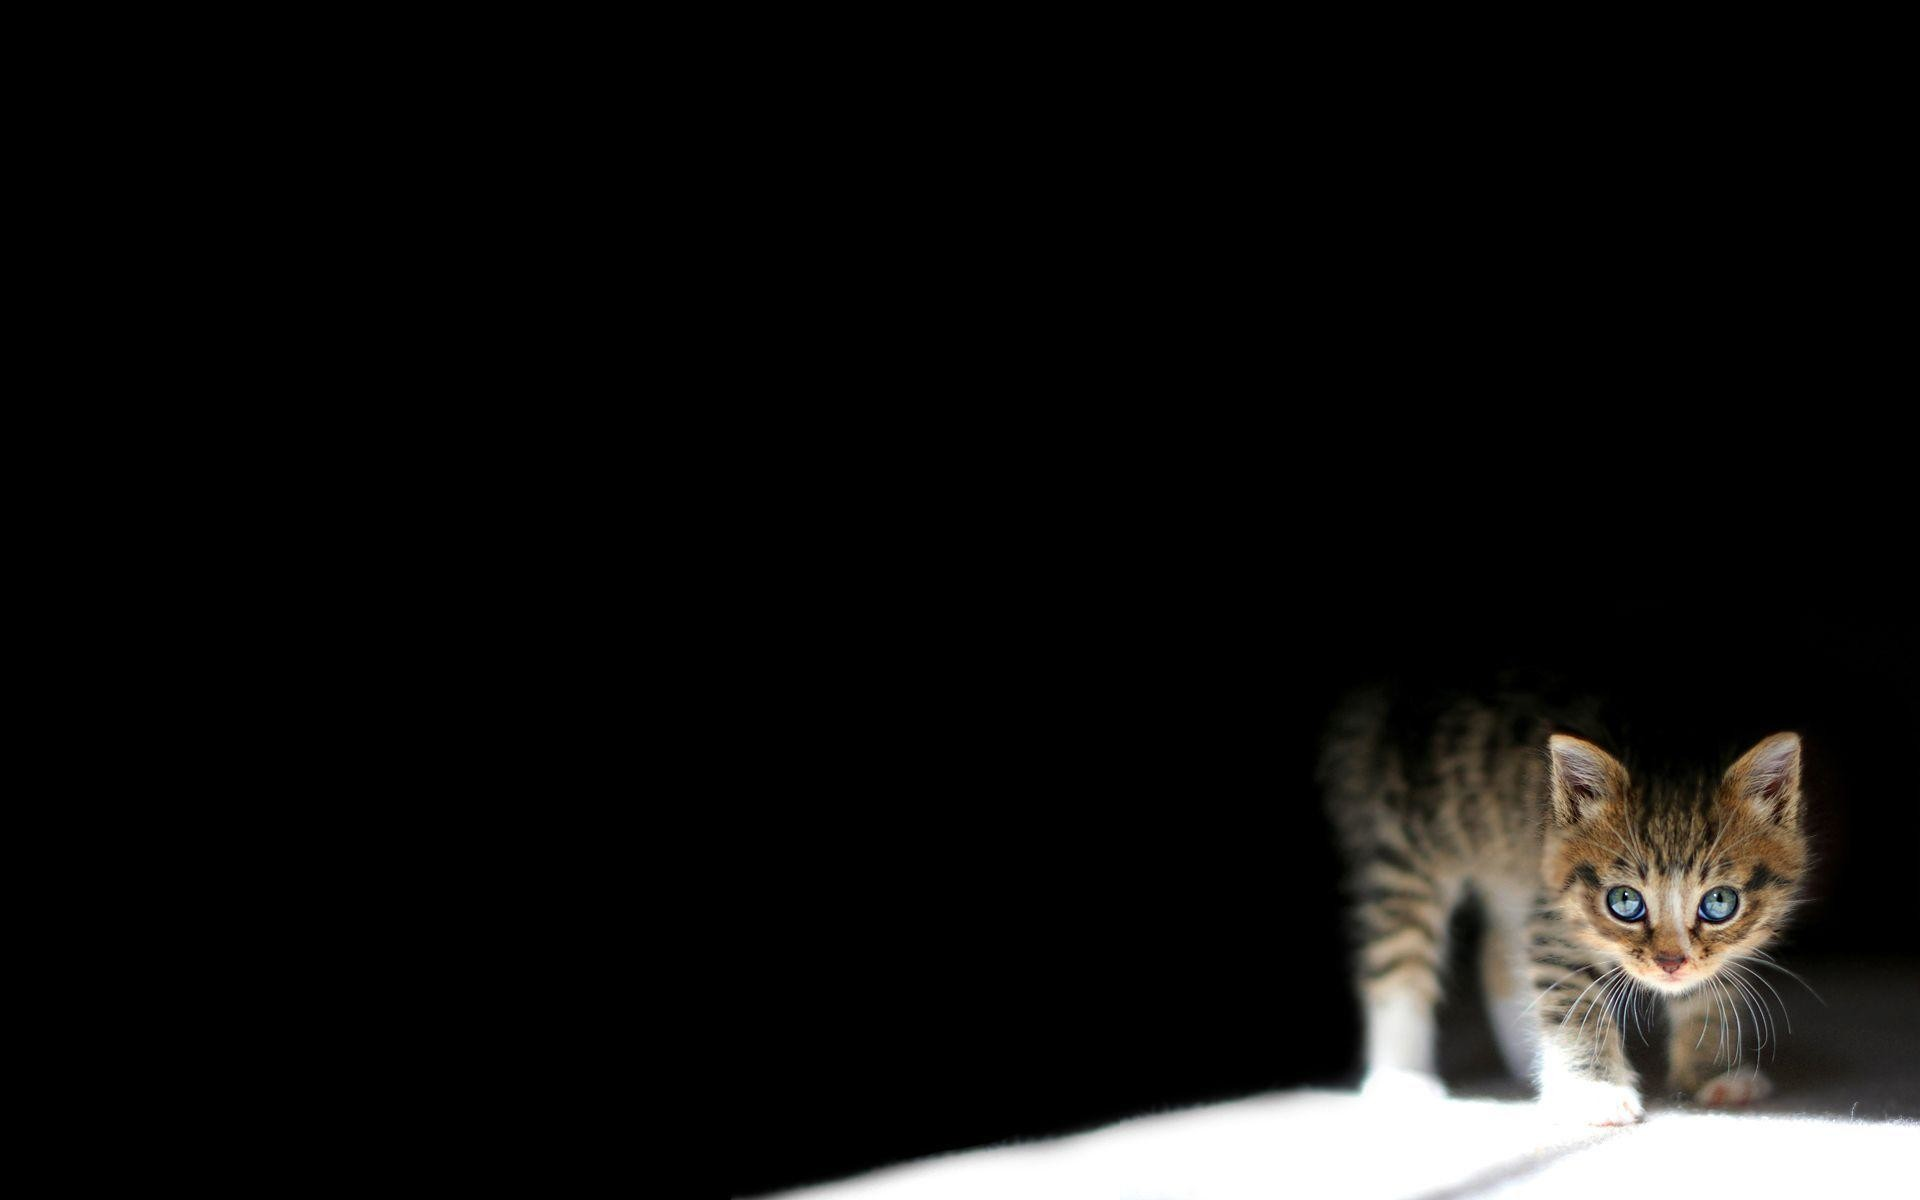 Cat Glasses Htc Hd Wallpaper Kitten Wallpaper Black Background 1172369 Hd Wallpaper Backgrounds Download